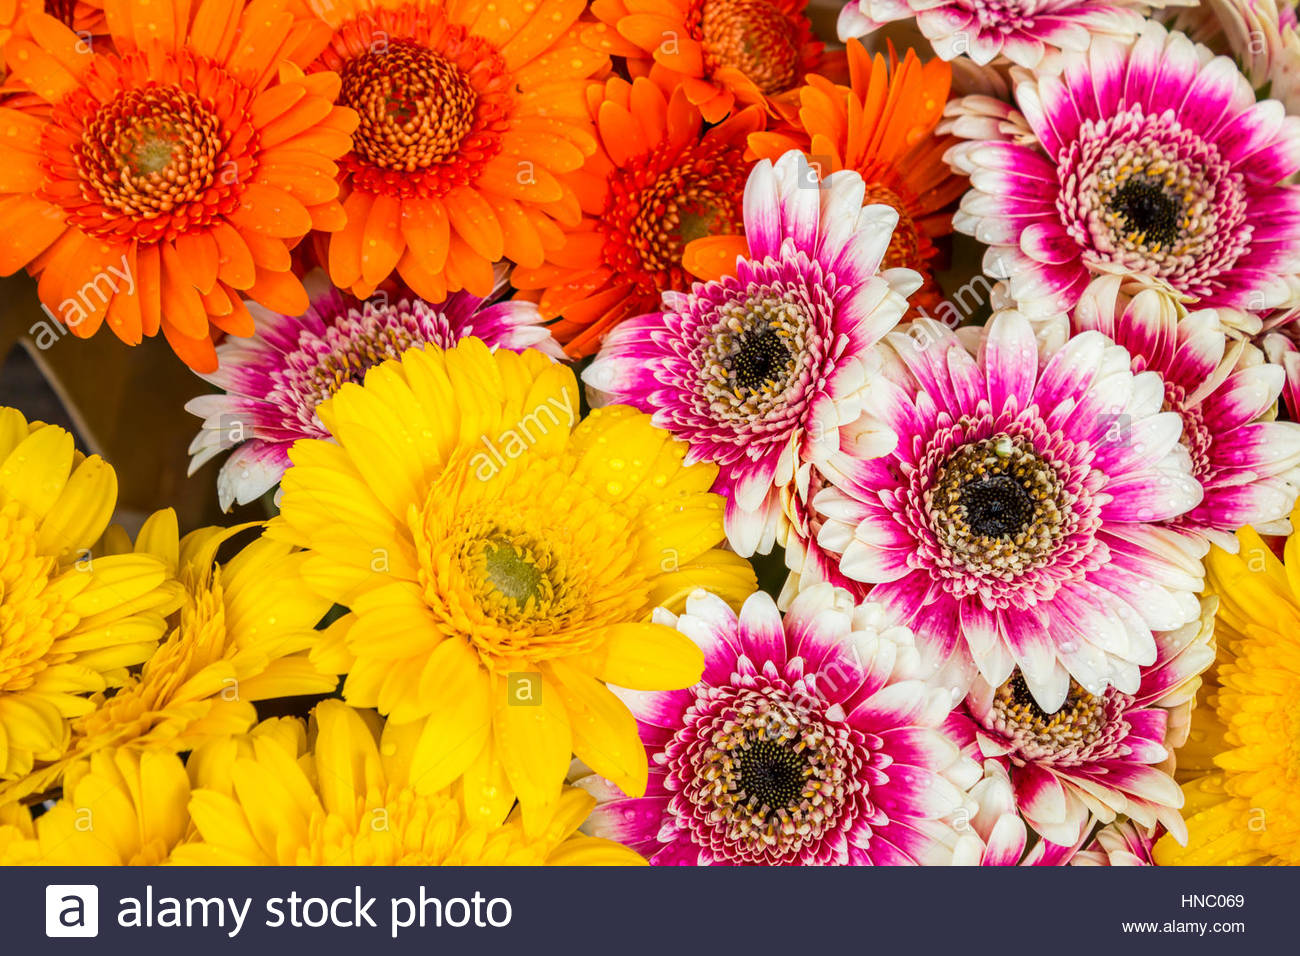 Close up of gerbera daisy flowers stock photo 133643953 alamy close up of gerbera daisy flowers izmirmasajfo